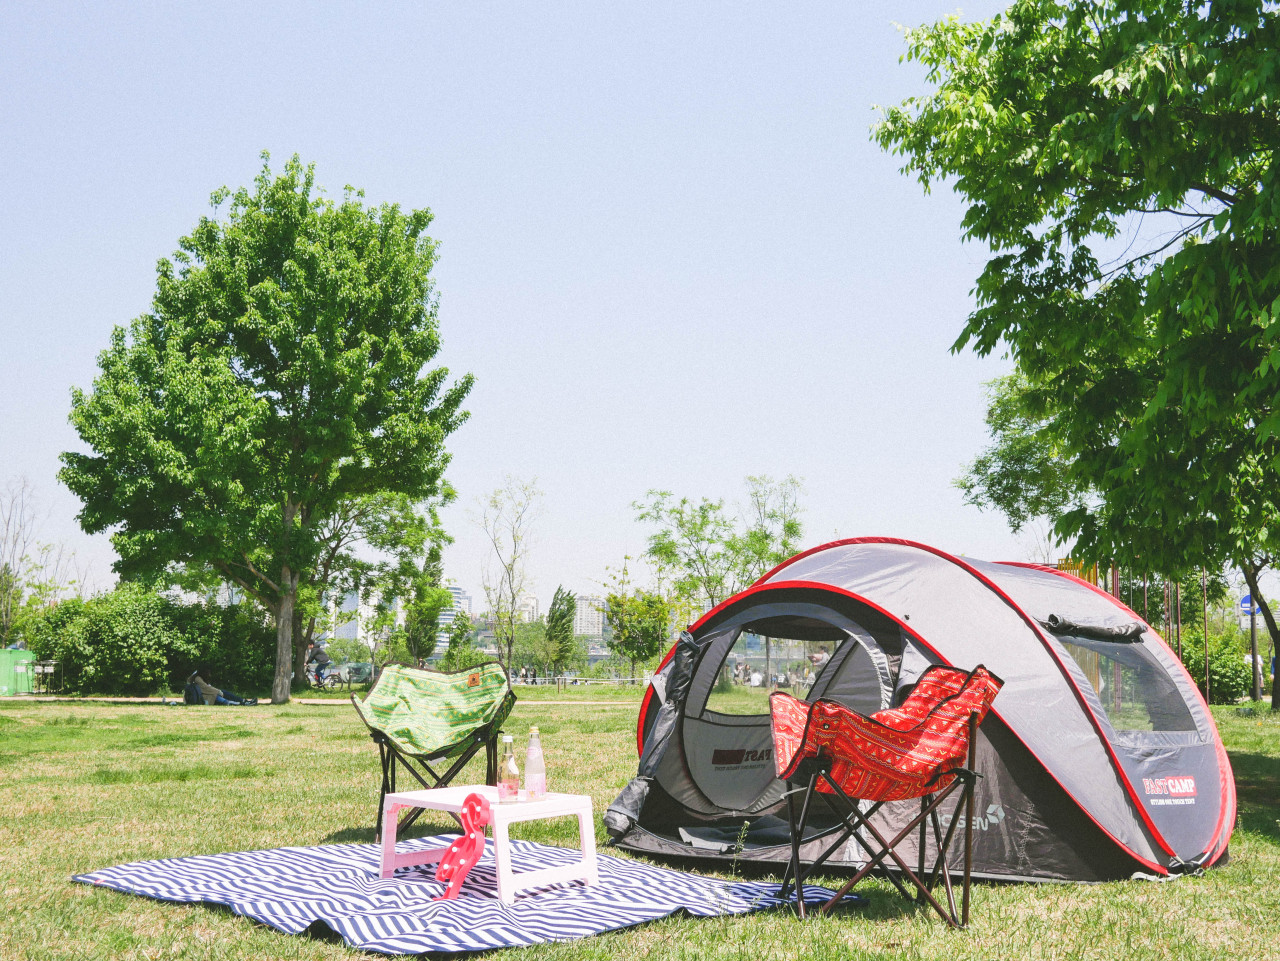 Camping rentals, such as Sudden Picnic, flourish around riverside parks in Seoul (Sudden Picnic)